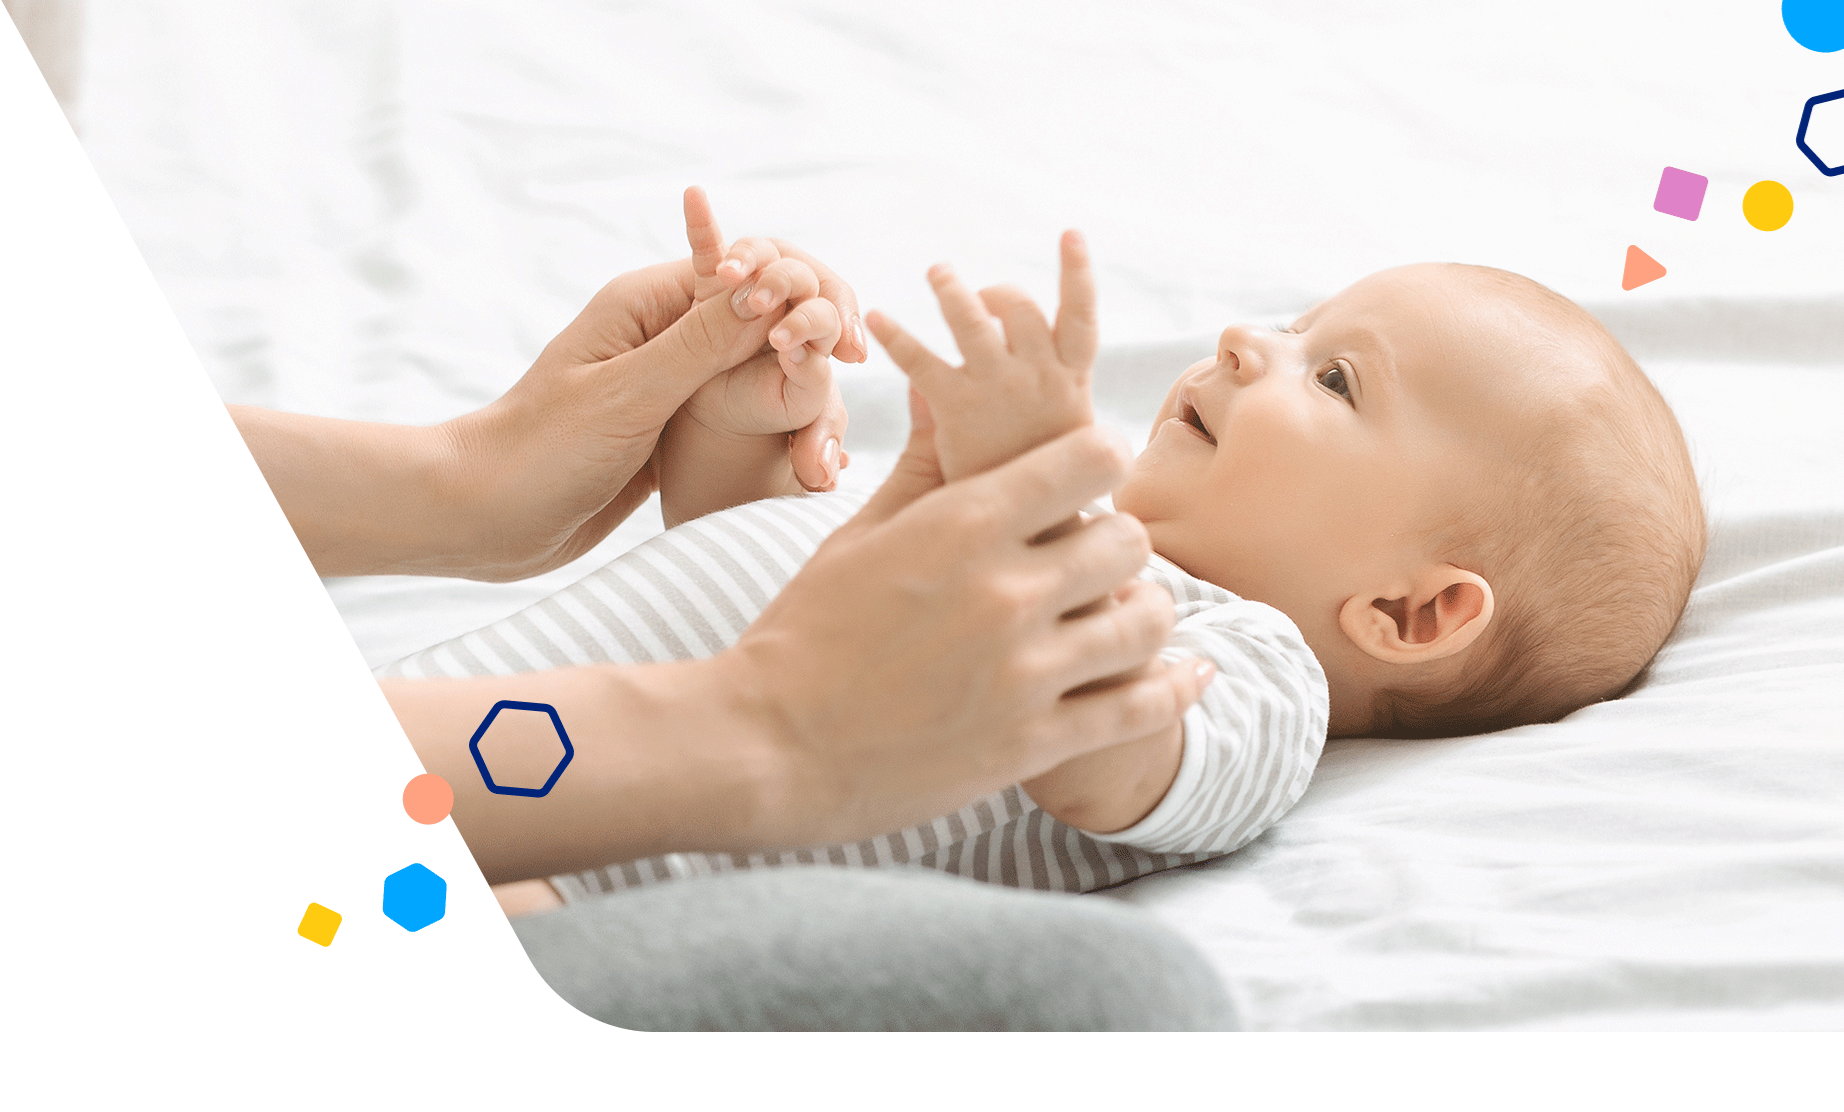 Why Baby Massage Should Be Part of Your Routine 5 Tips for Beginners